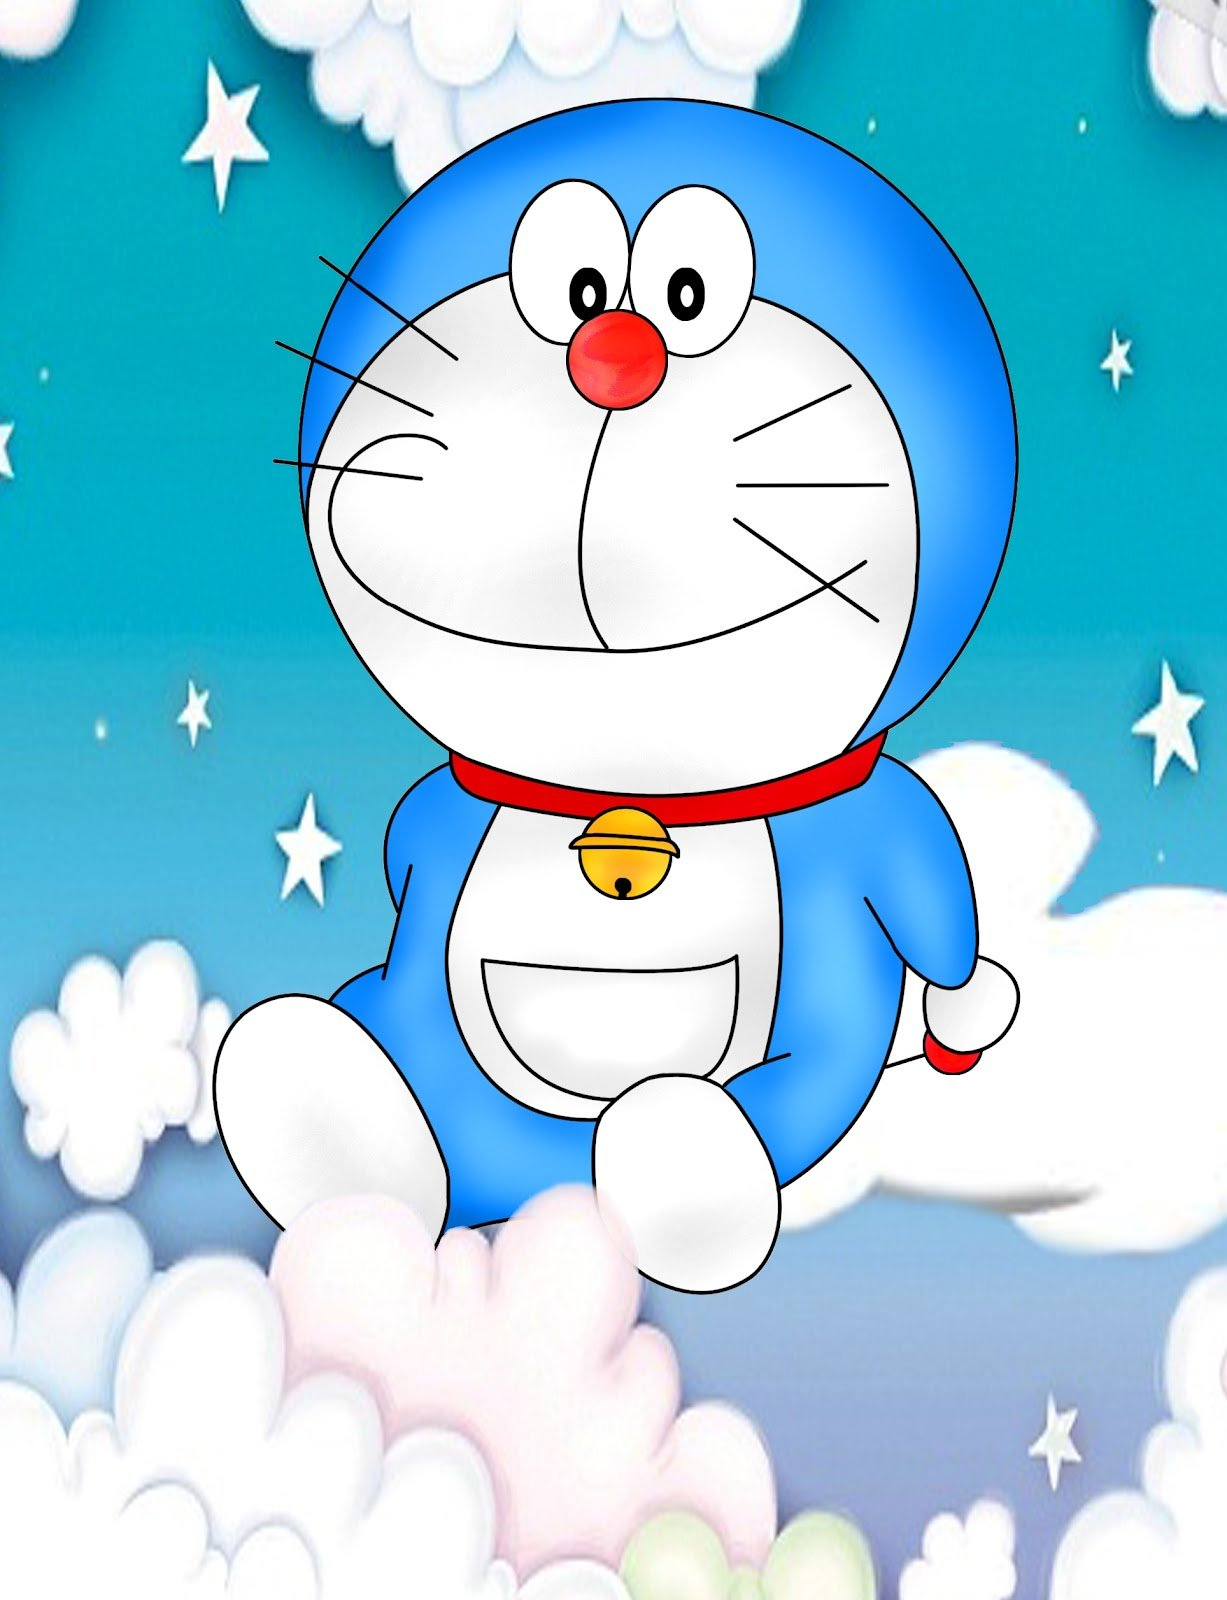 Doraemon Wallpaper For Iphone Wallpapersafari